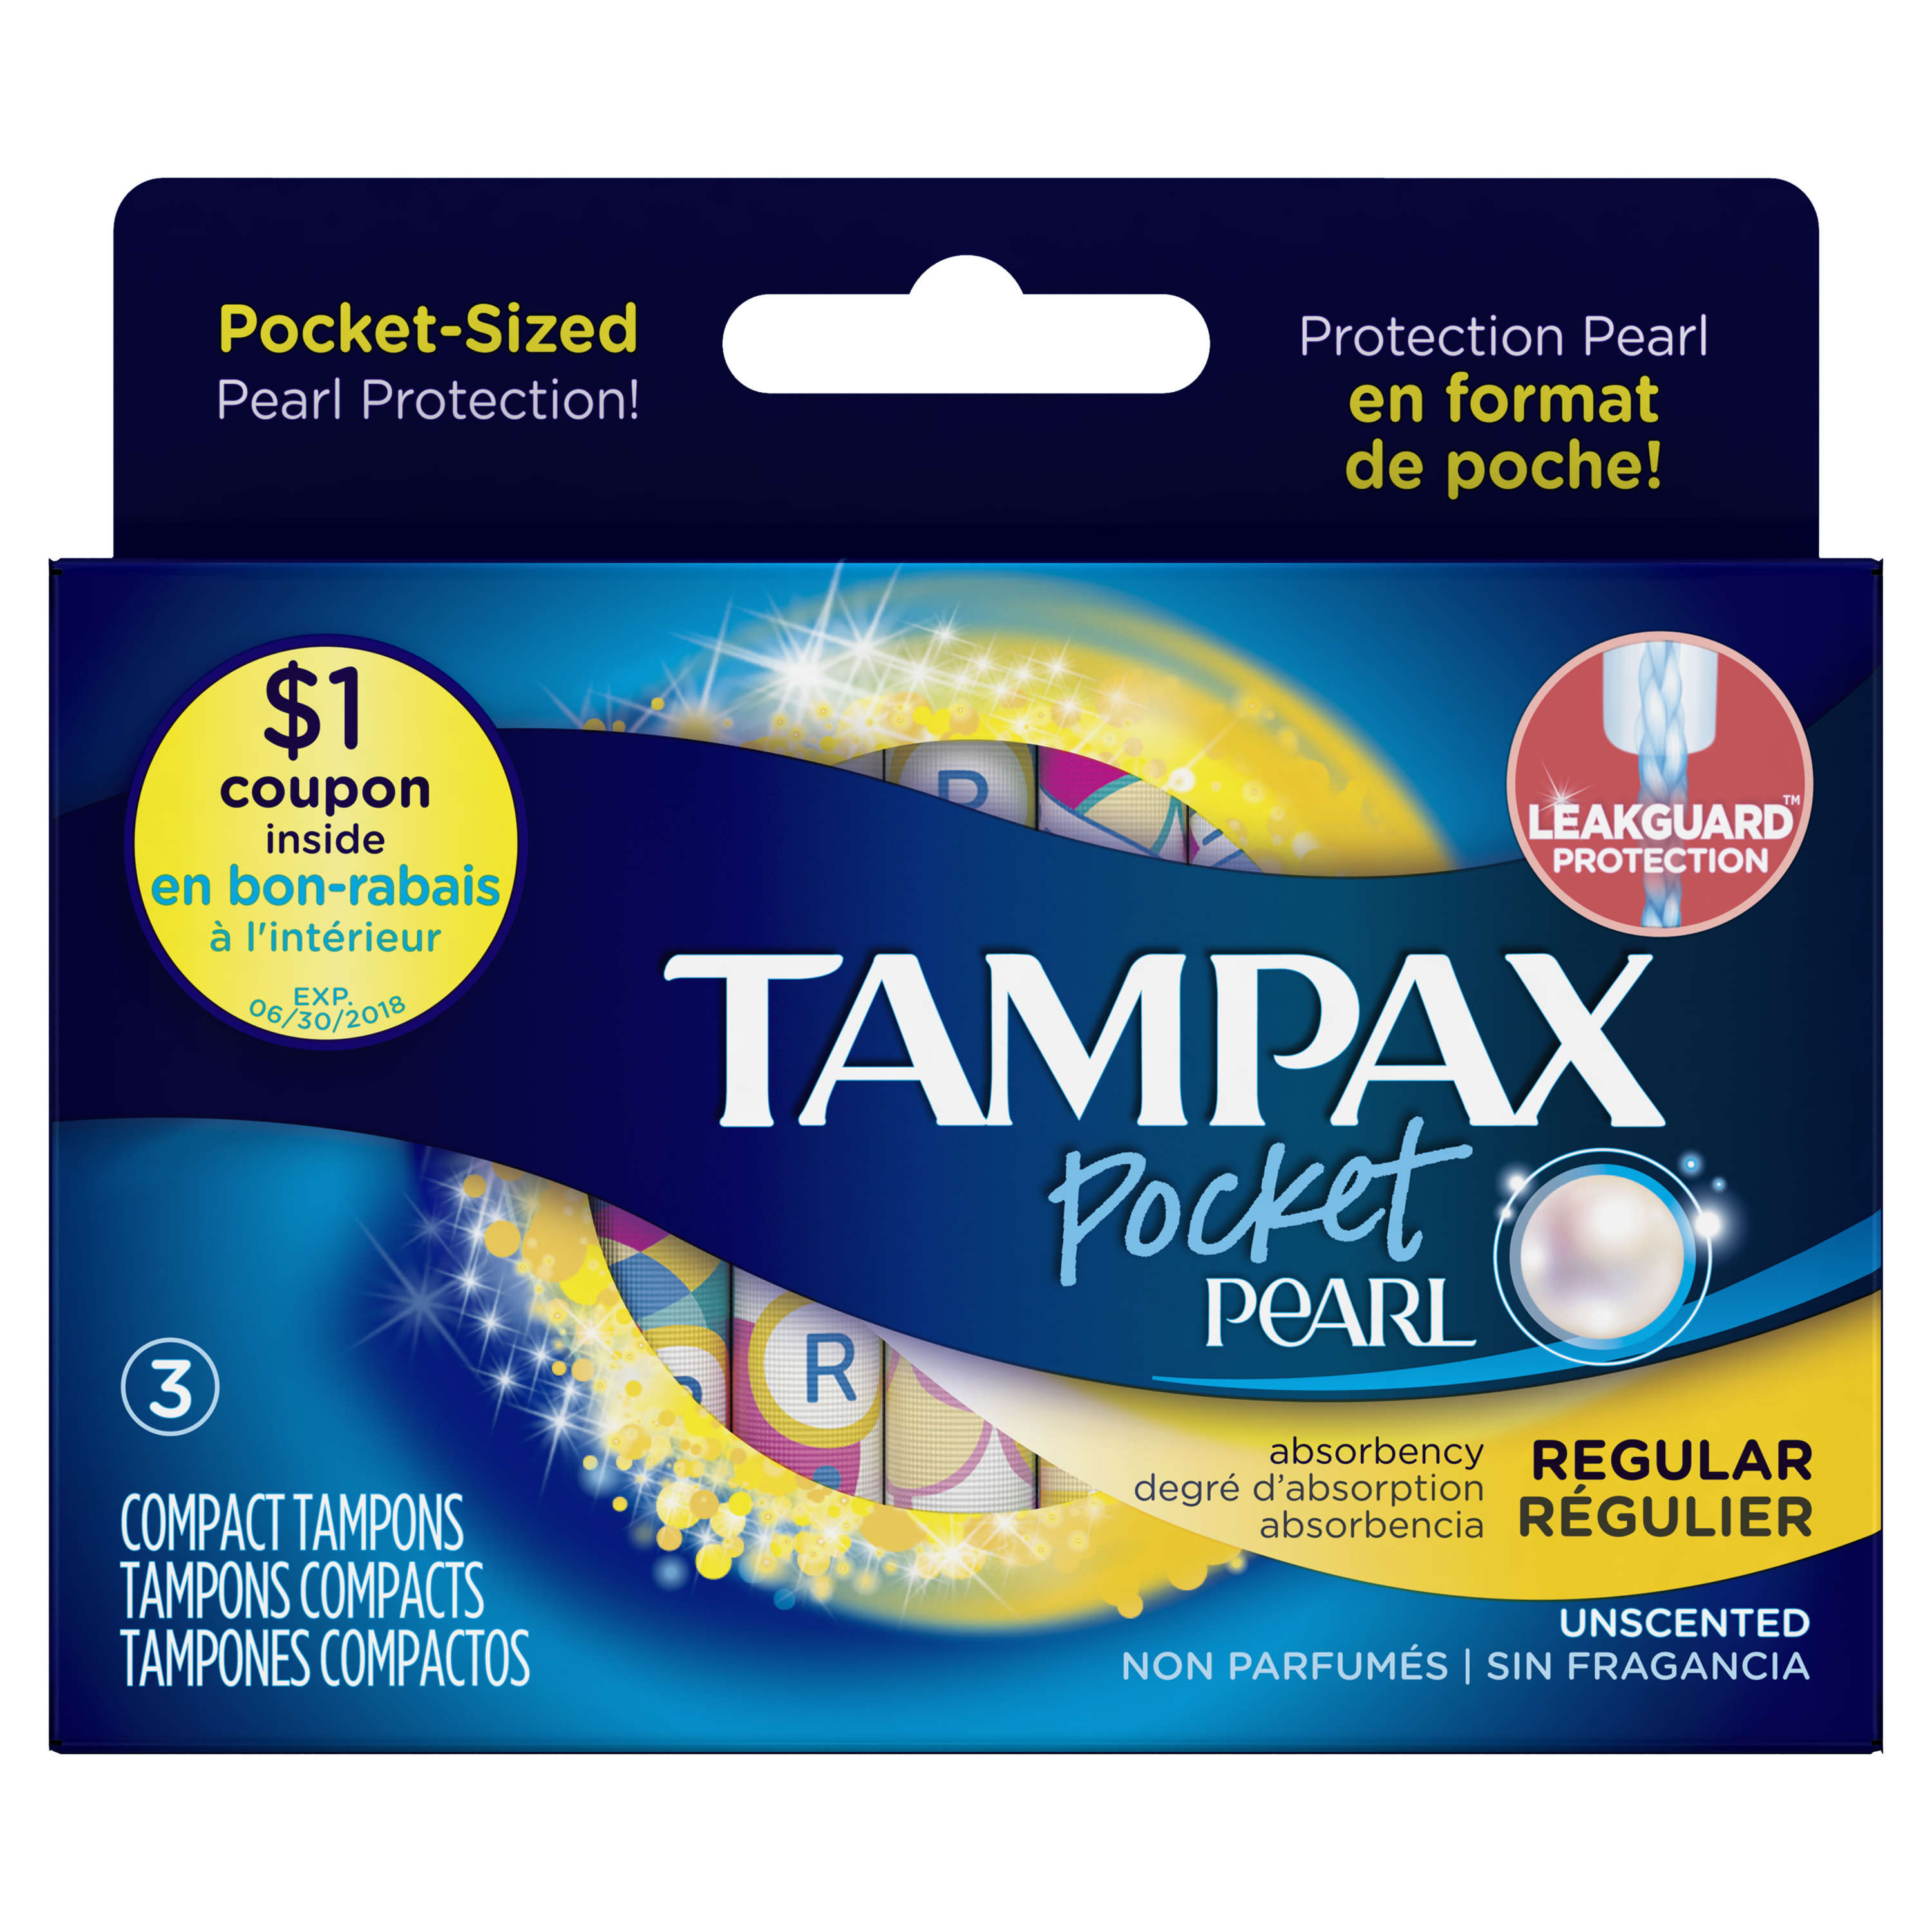 Tampax Pocket Pearl Regular Plastic Tampons, Unscented, 3 Ct